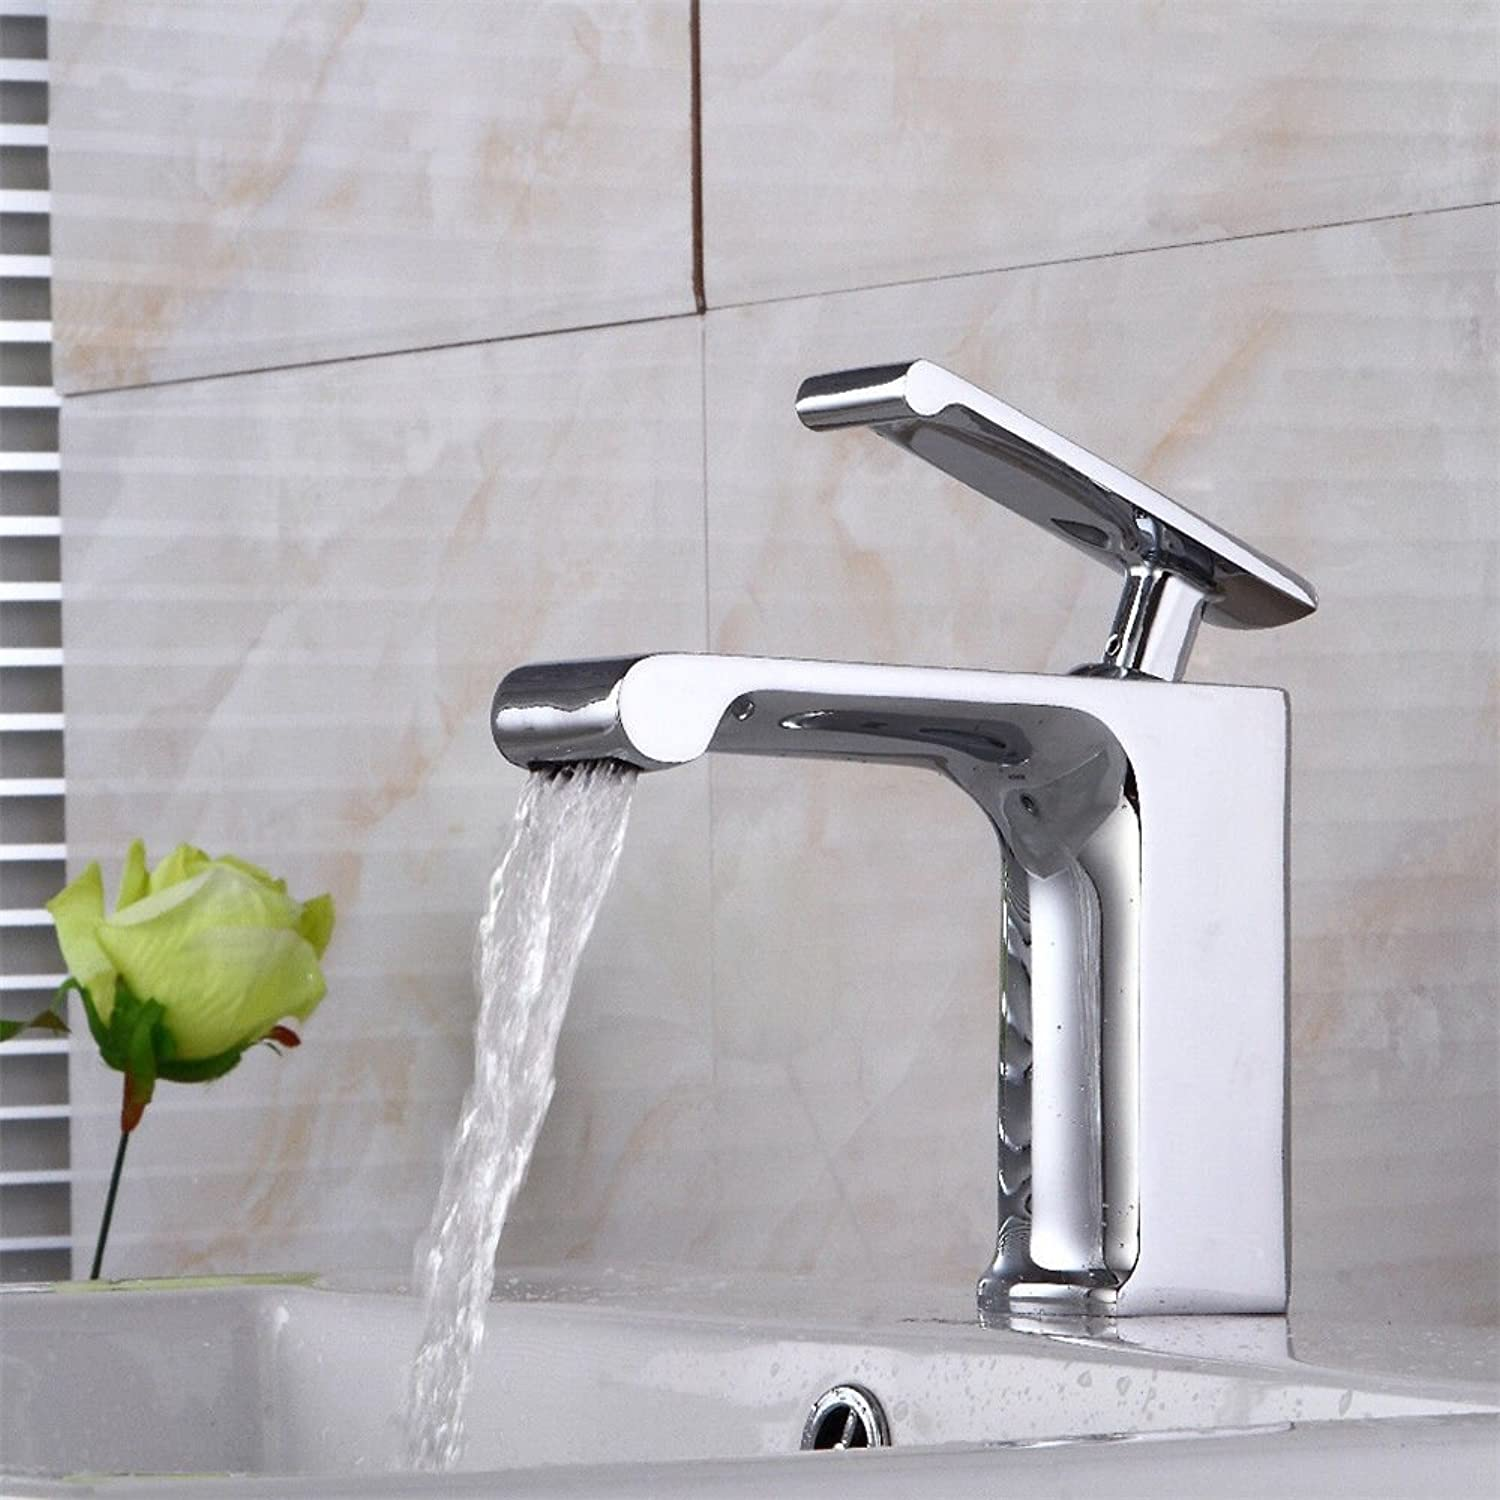 S.Twl.E Sink Mixer Tap Faucet Bathroom Kitchen Basin Tap Leakproof Save Water Antique Copper Hot And Cold